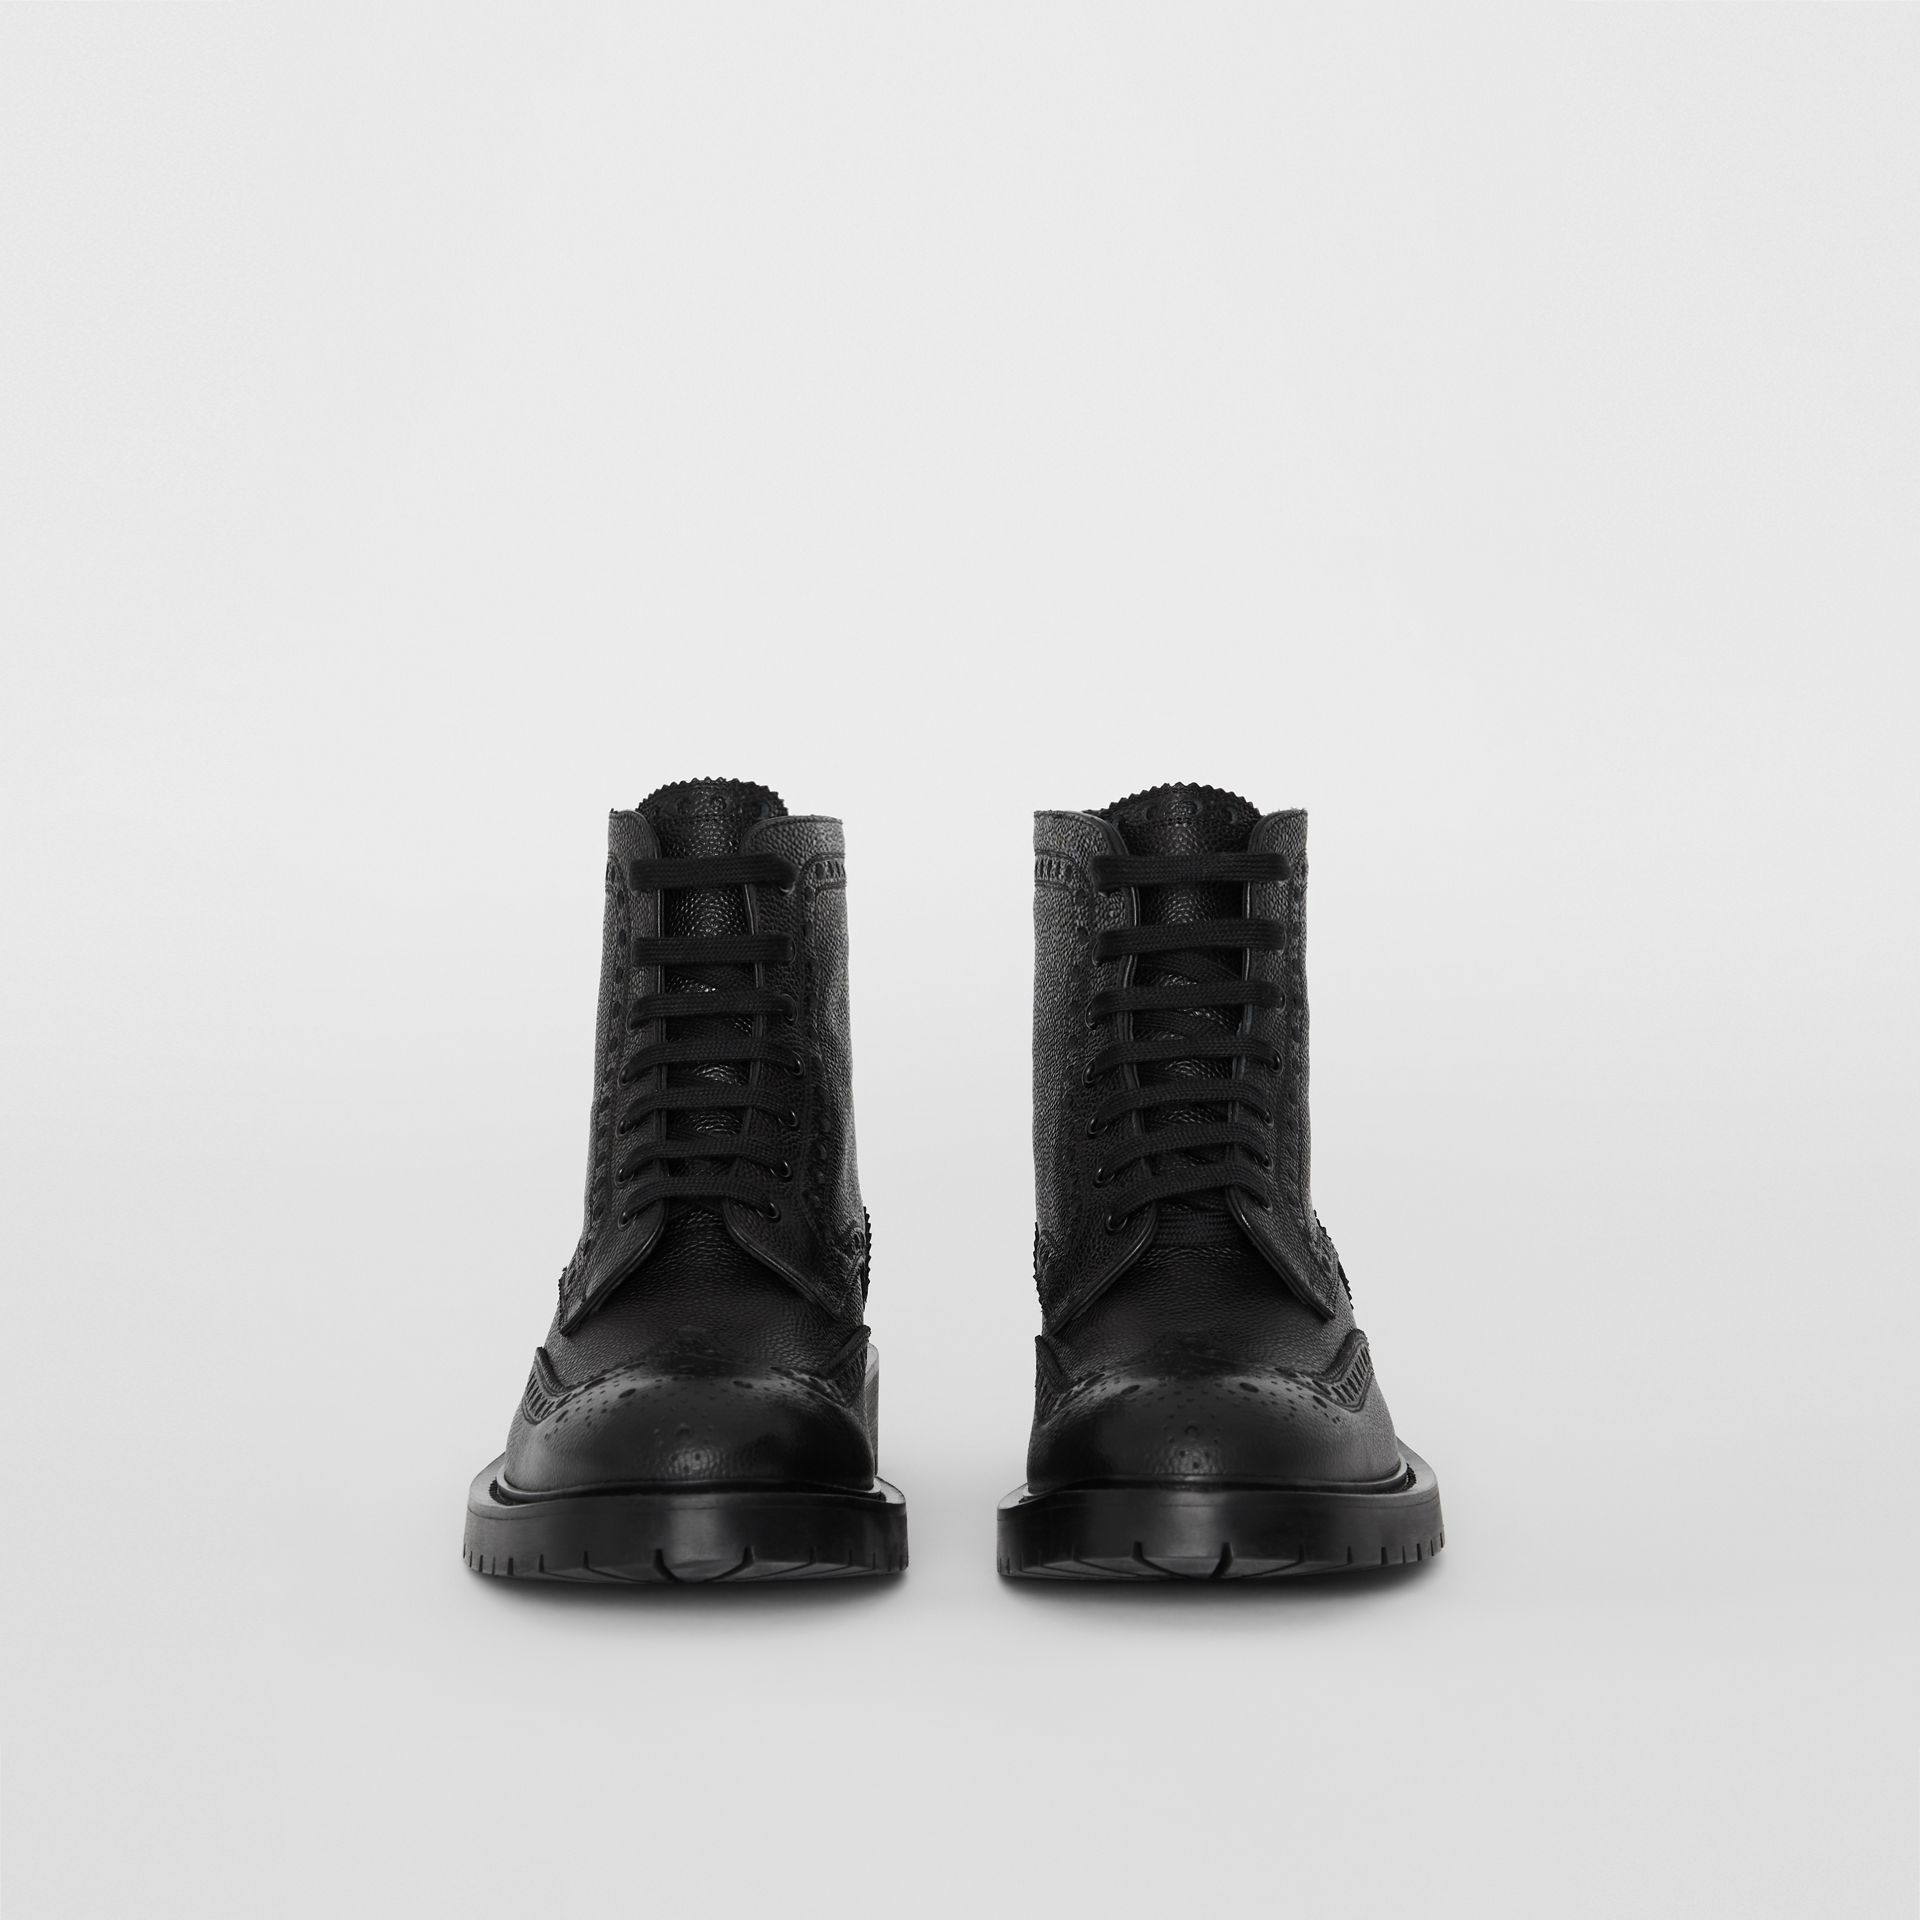 Brogue Detail Grainy Leather Boots in Black - Men | Burberry - gallery image 3